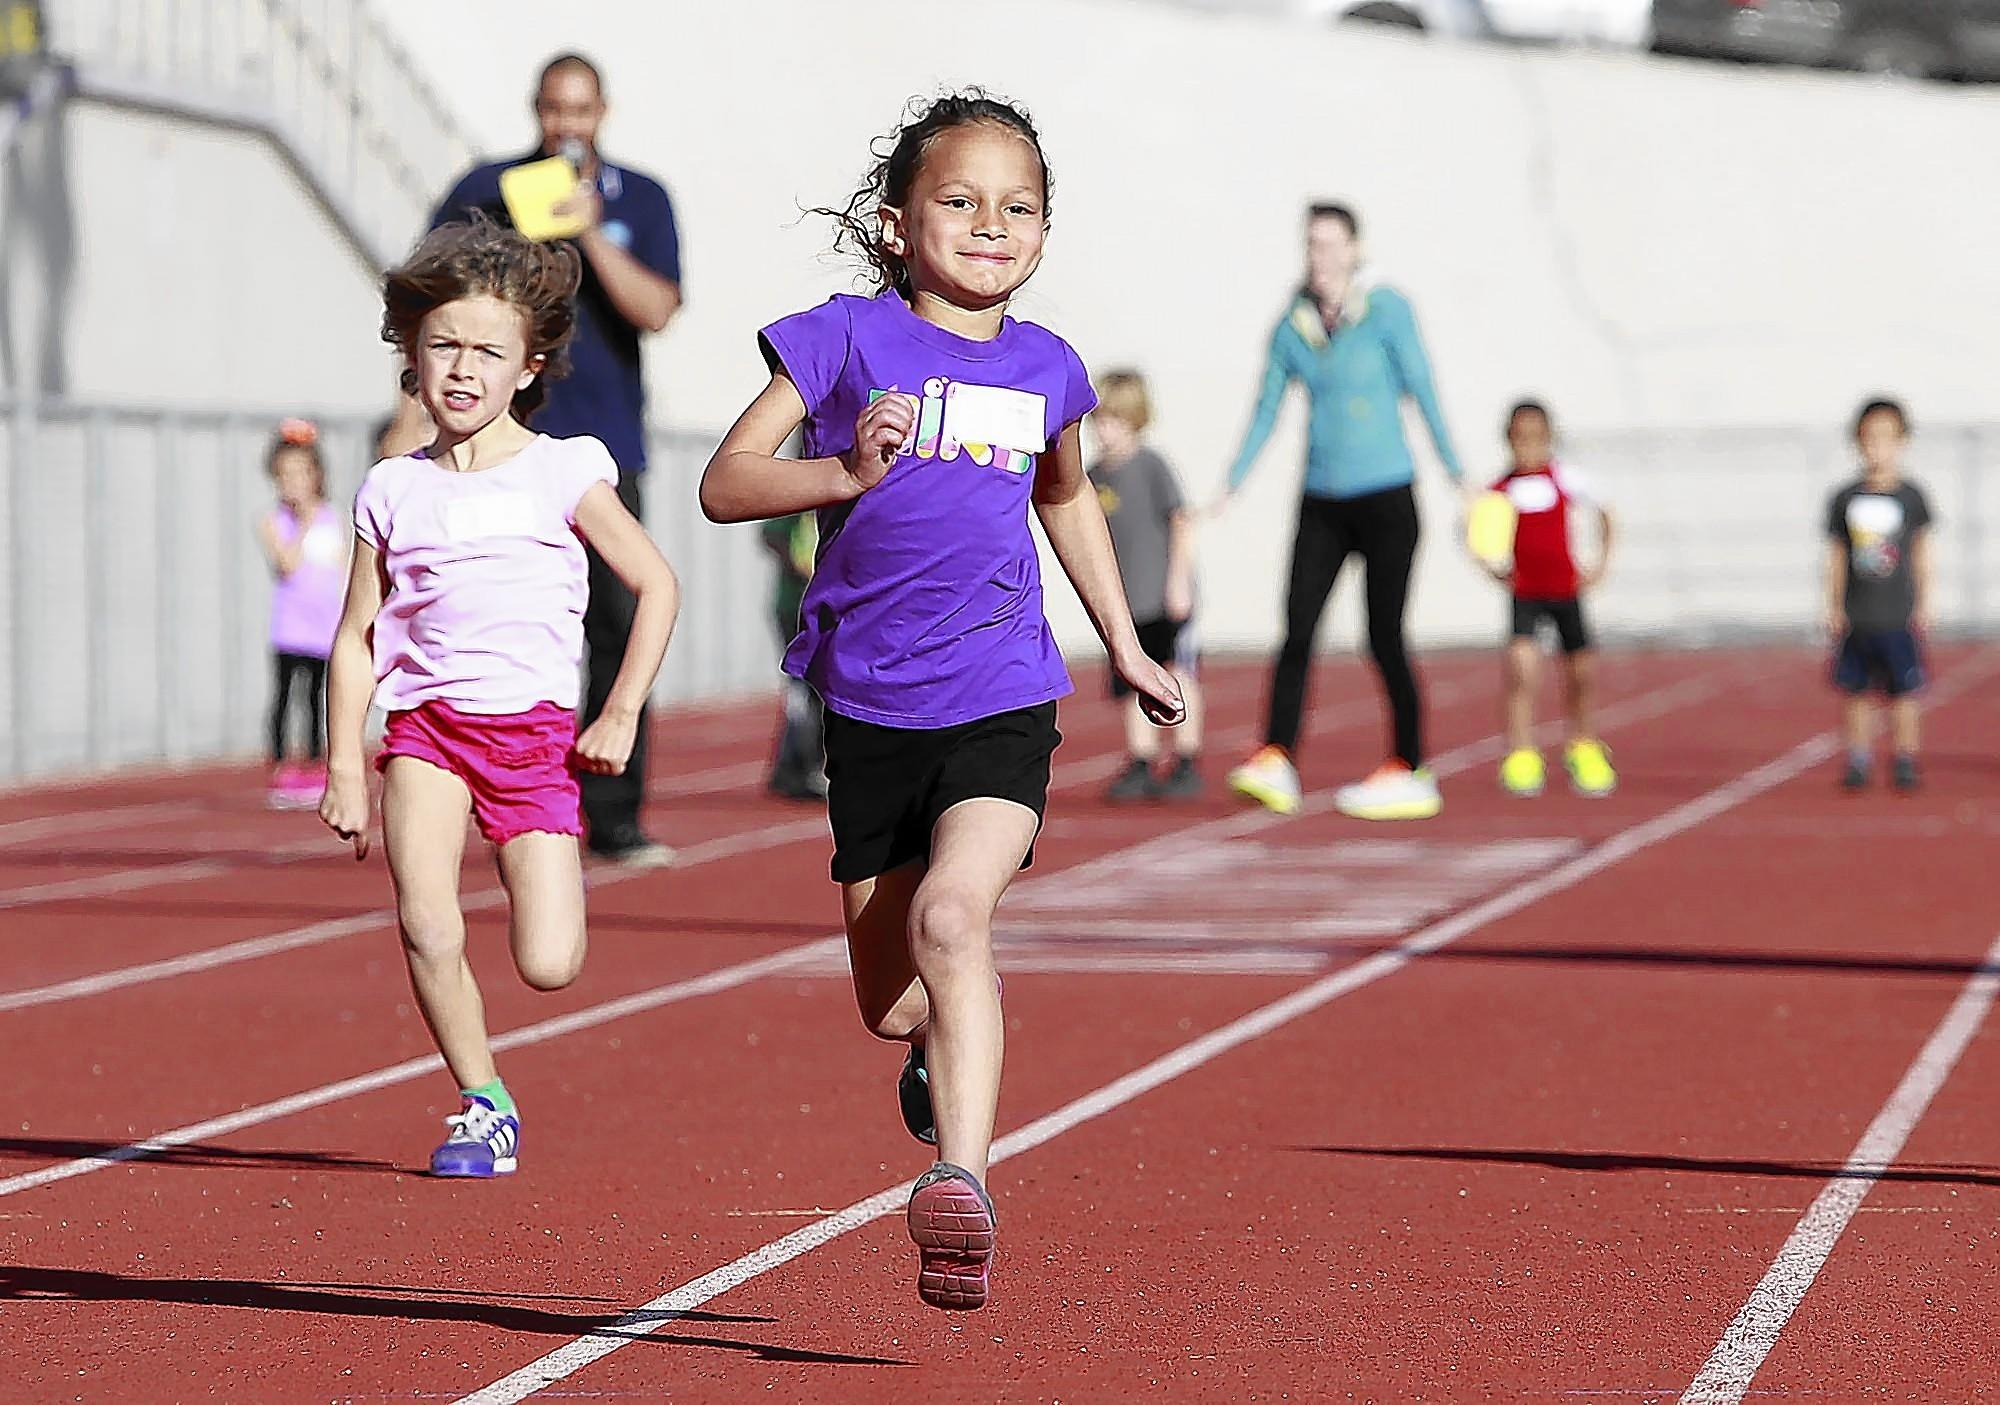 Sienna Brown smiles as she pulls away during the 50-meter run during the Laguna Beach Community Service Department's annual Youth Track Meet at Laguna Beach High School on Friday.